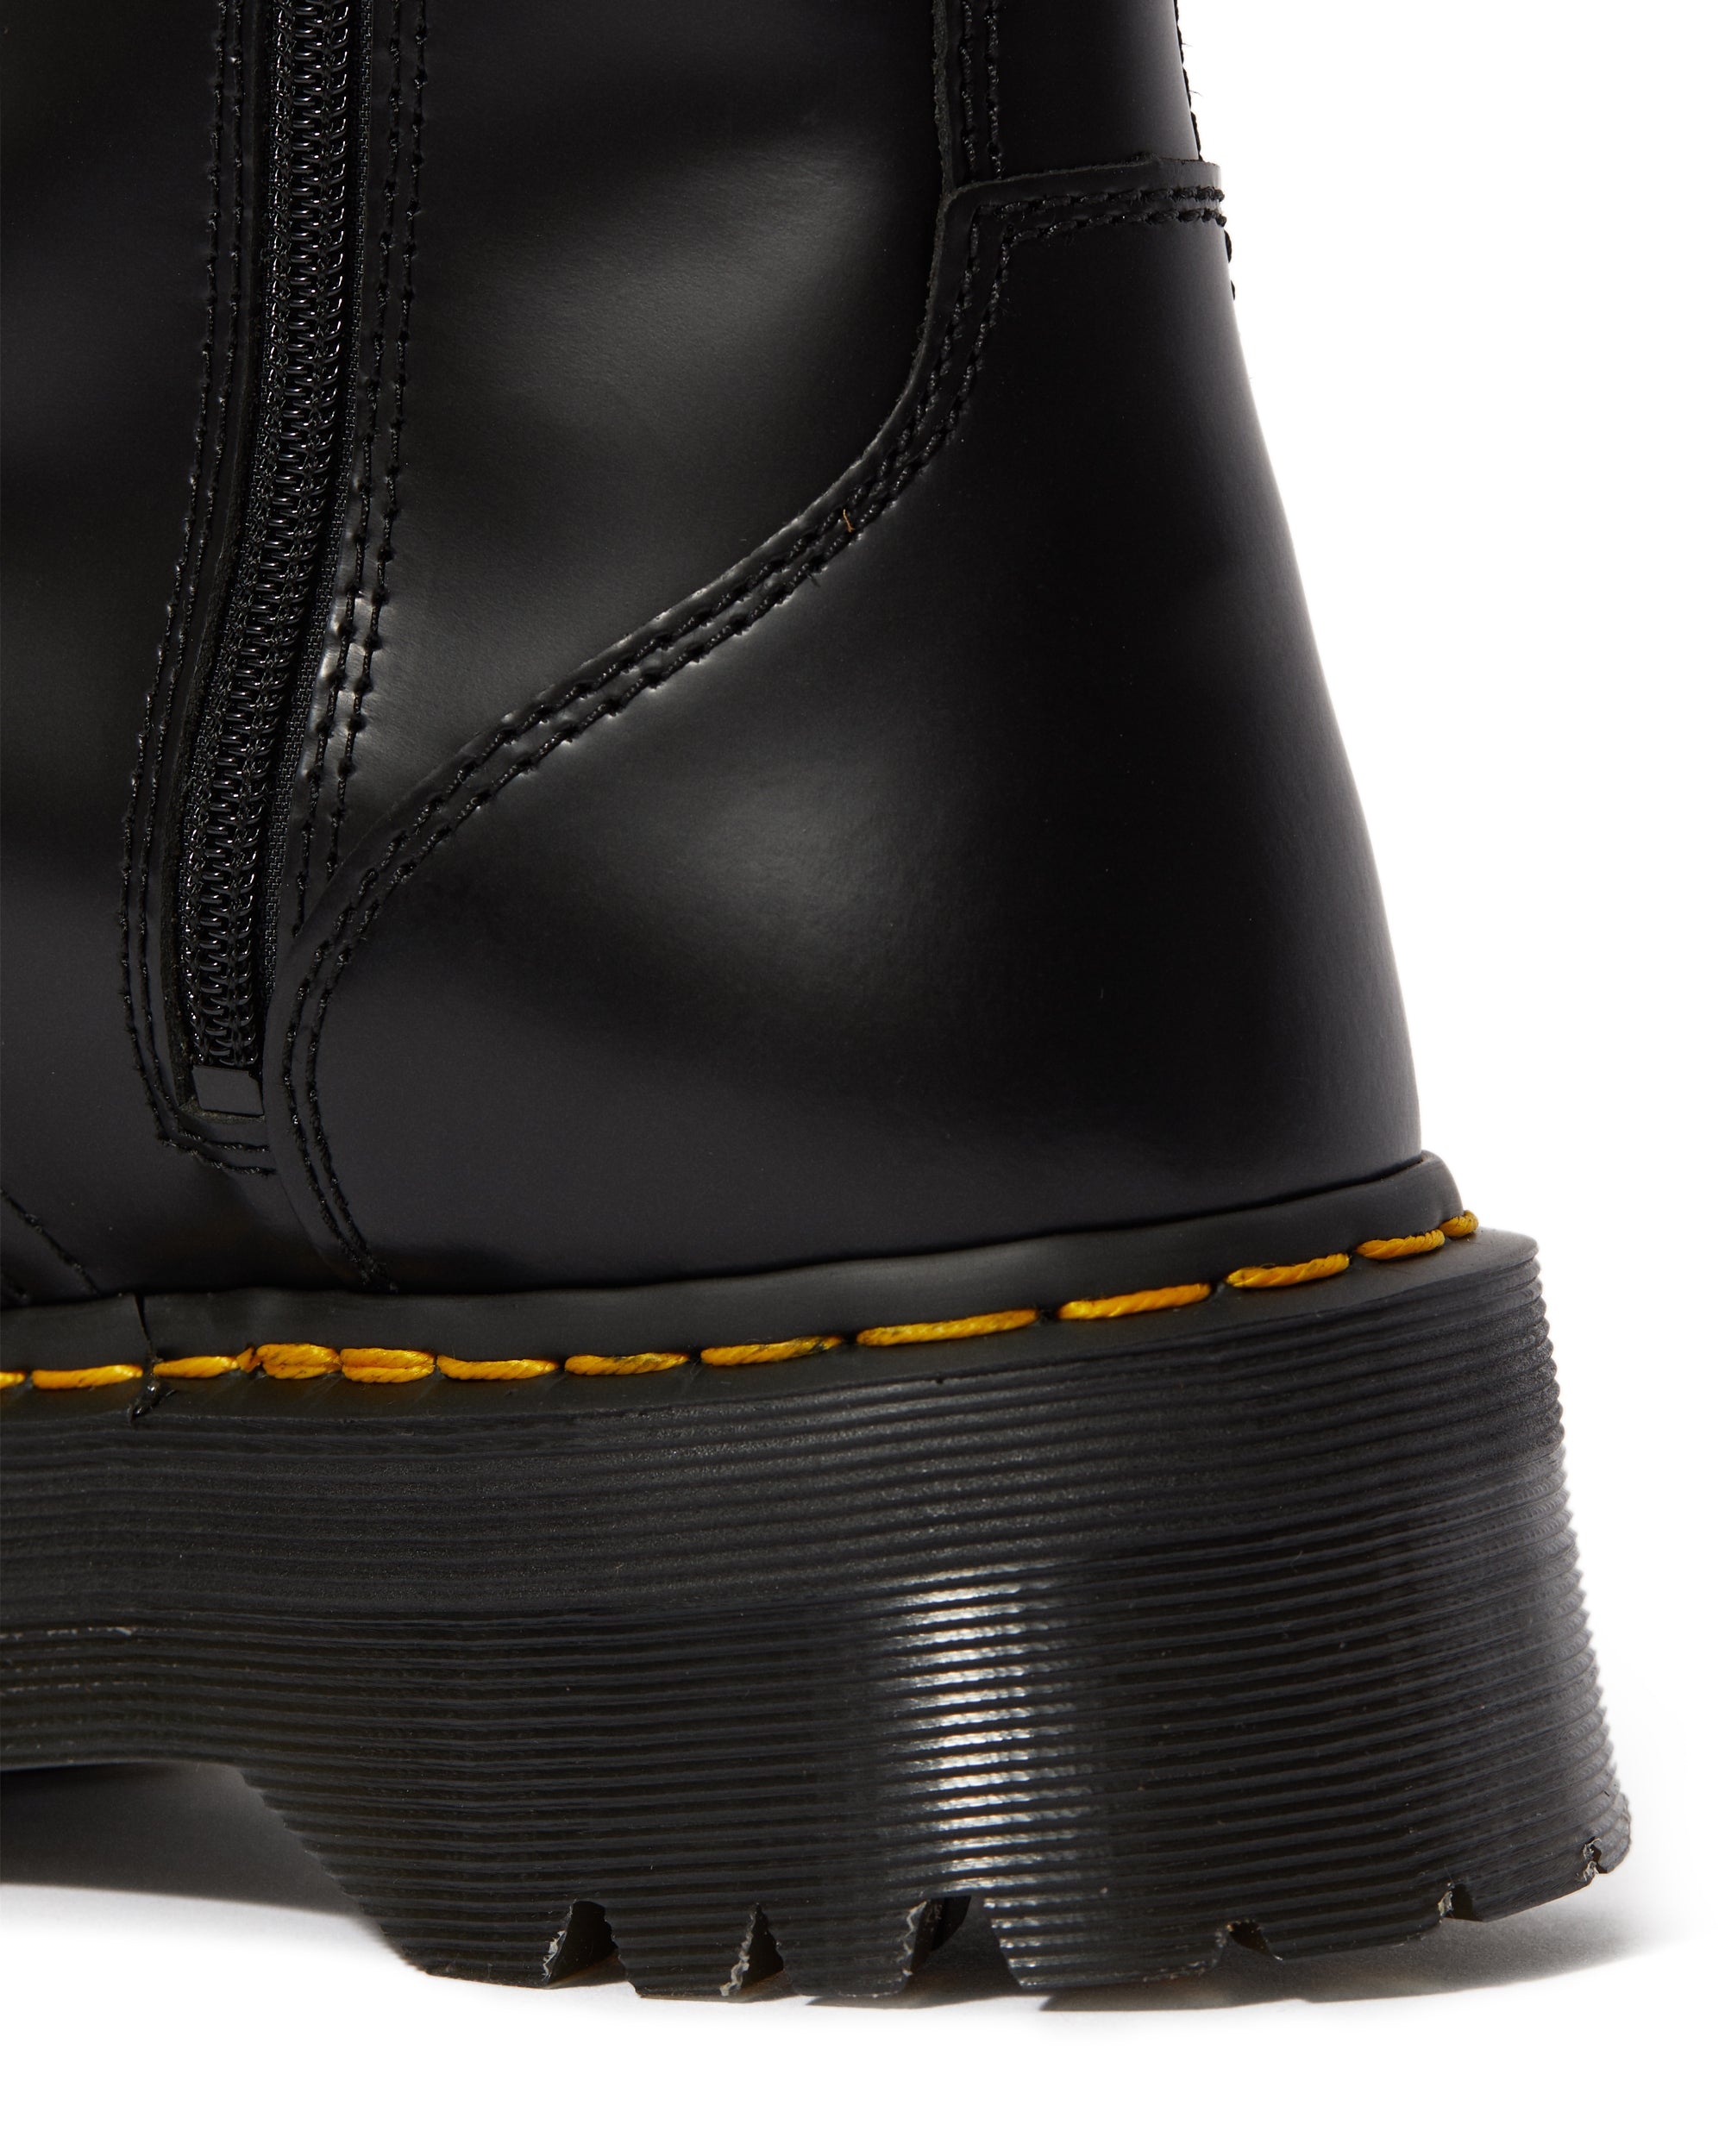 Dr. Marten Jadon Polished Smooth Women's Boot